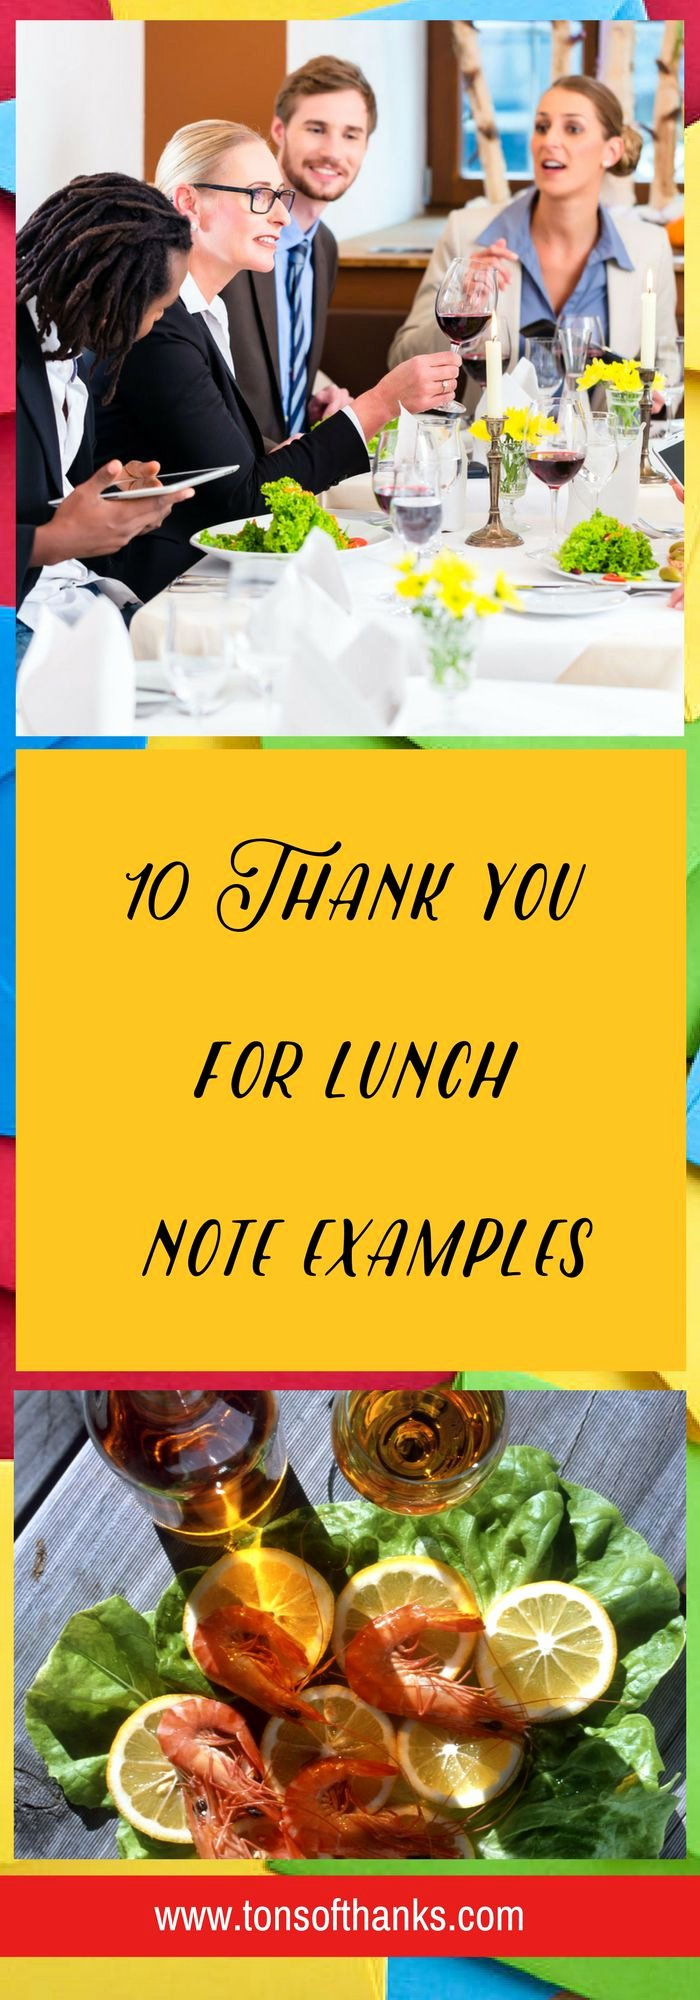 Thank You Notes for Lunch Inspirational 17 Best Images About Thank You Note Examples On Pinterest